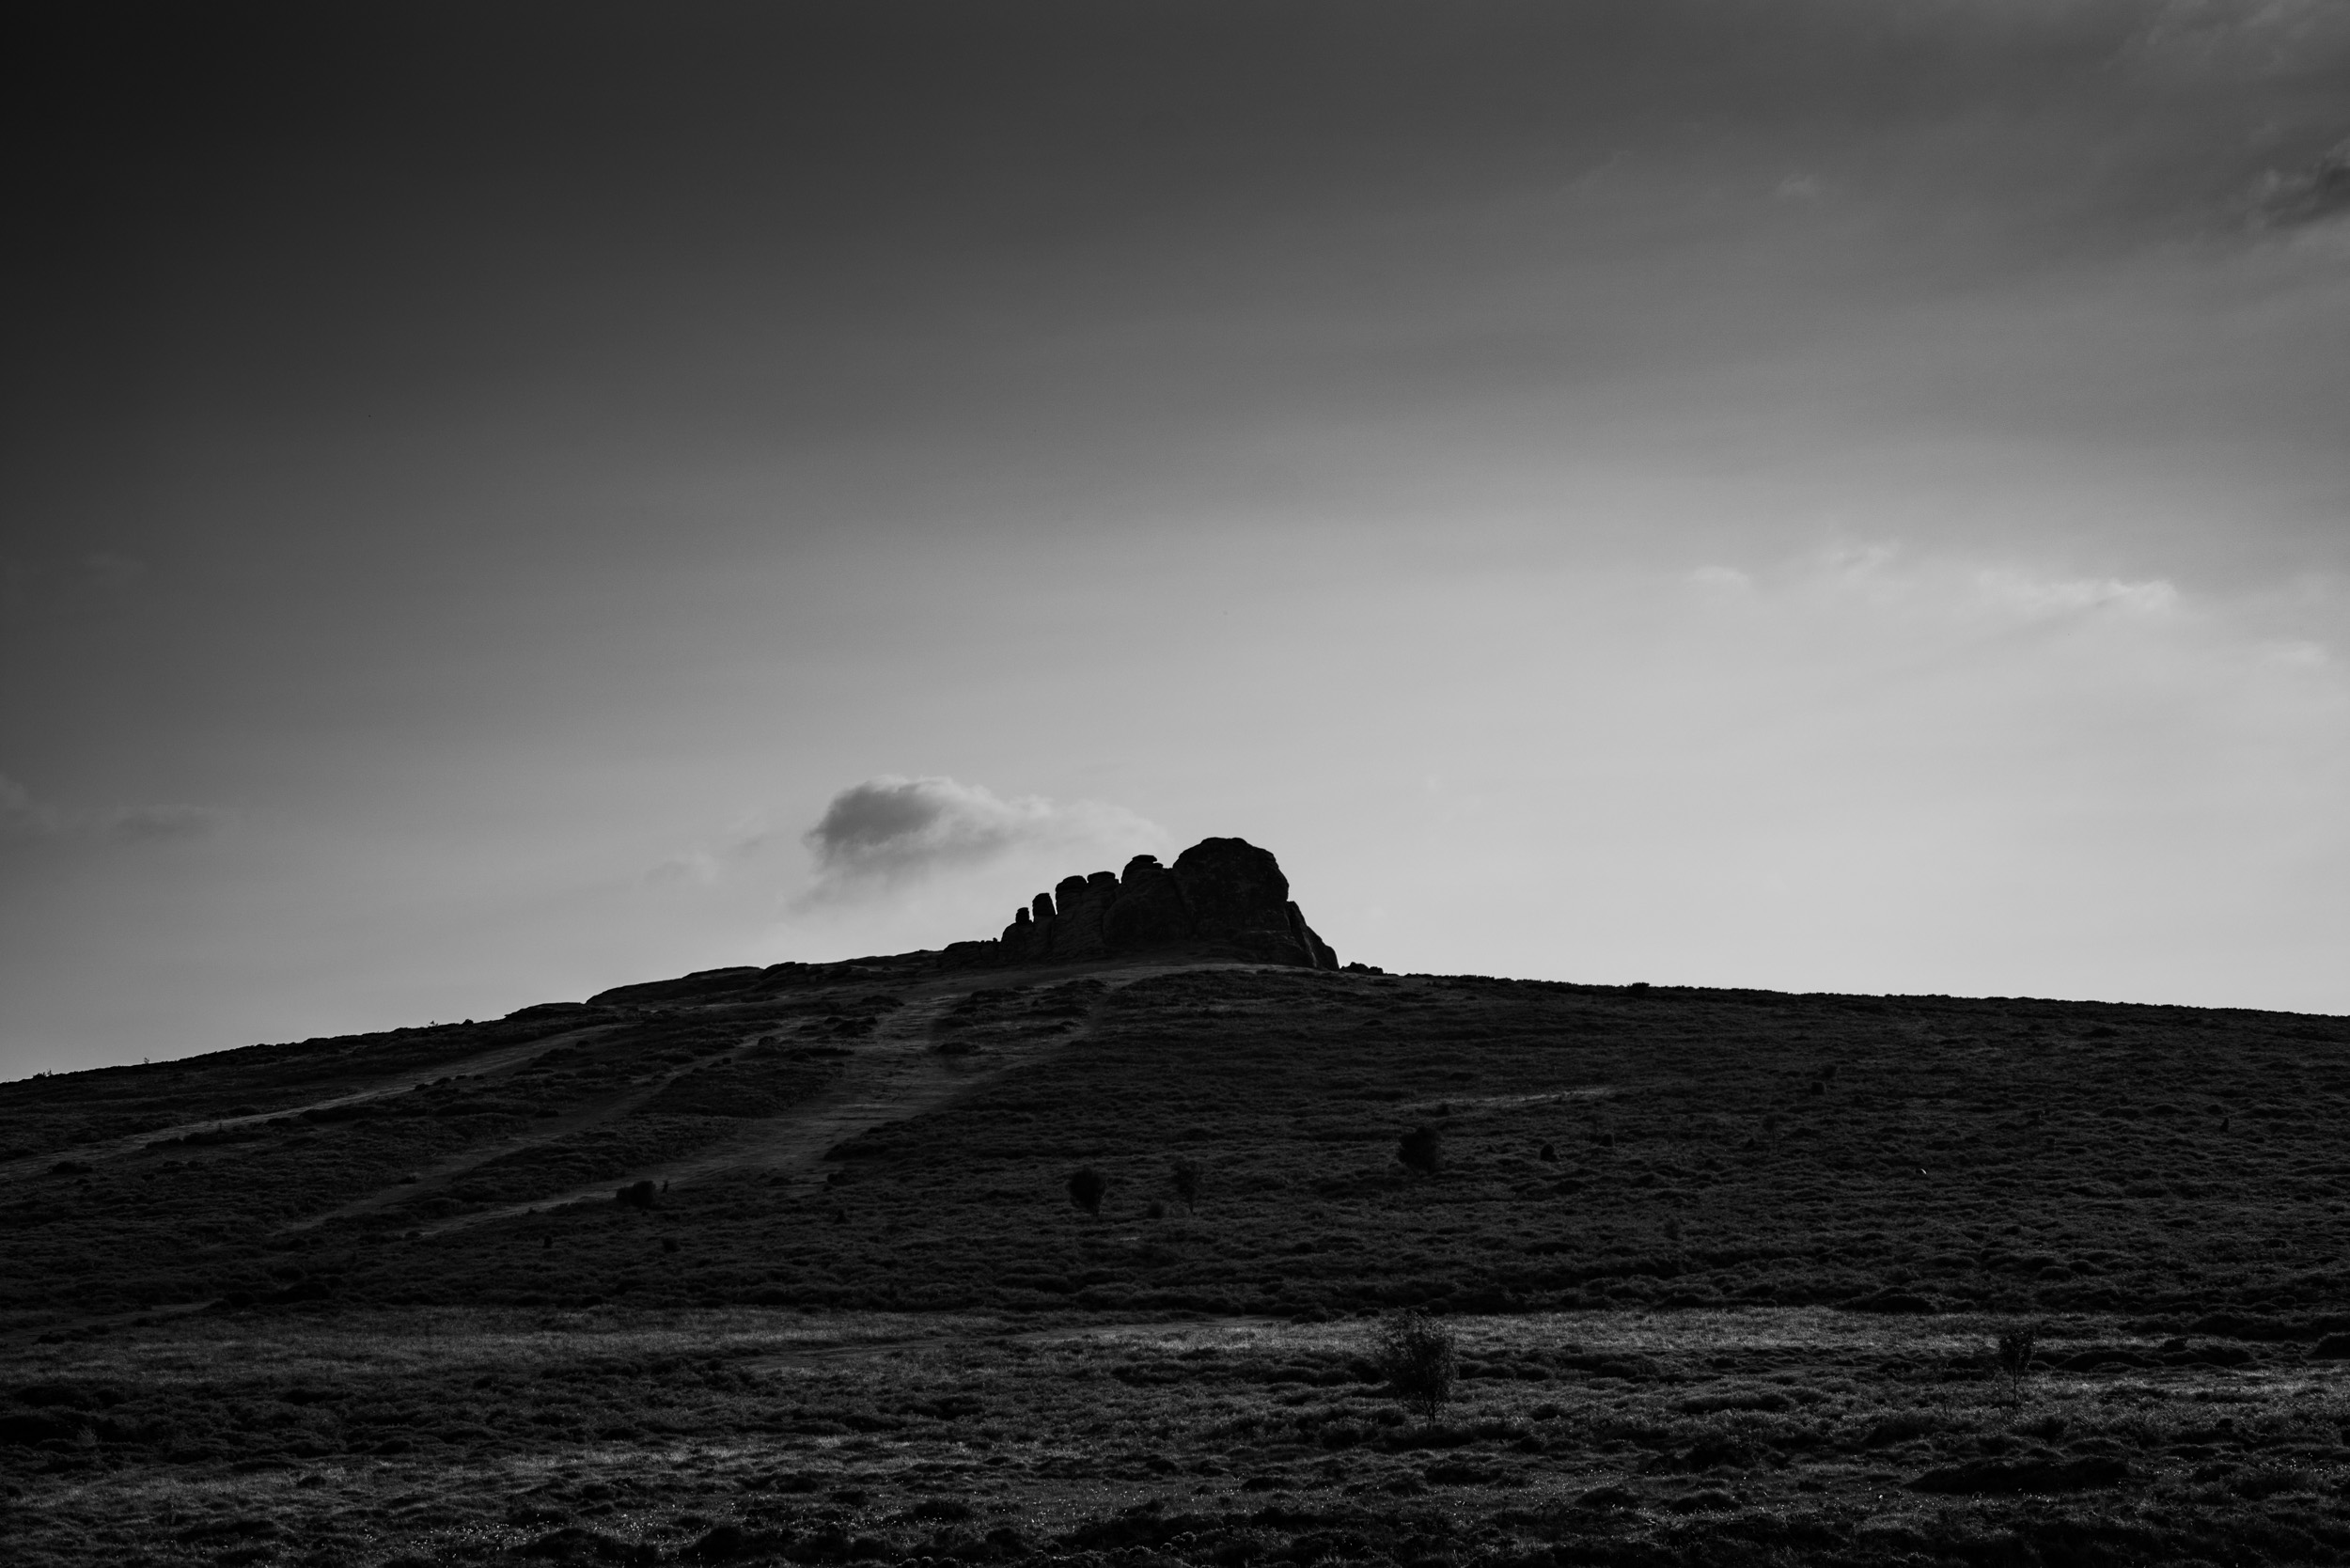 Dartmoor_HayTor_BbigFoot.jpg